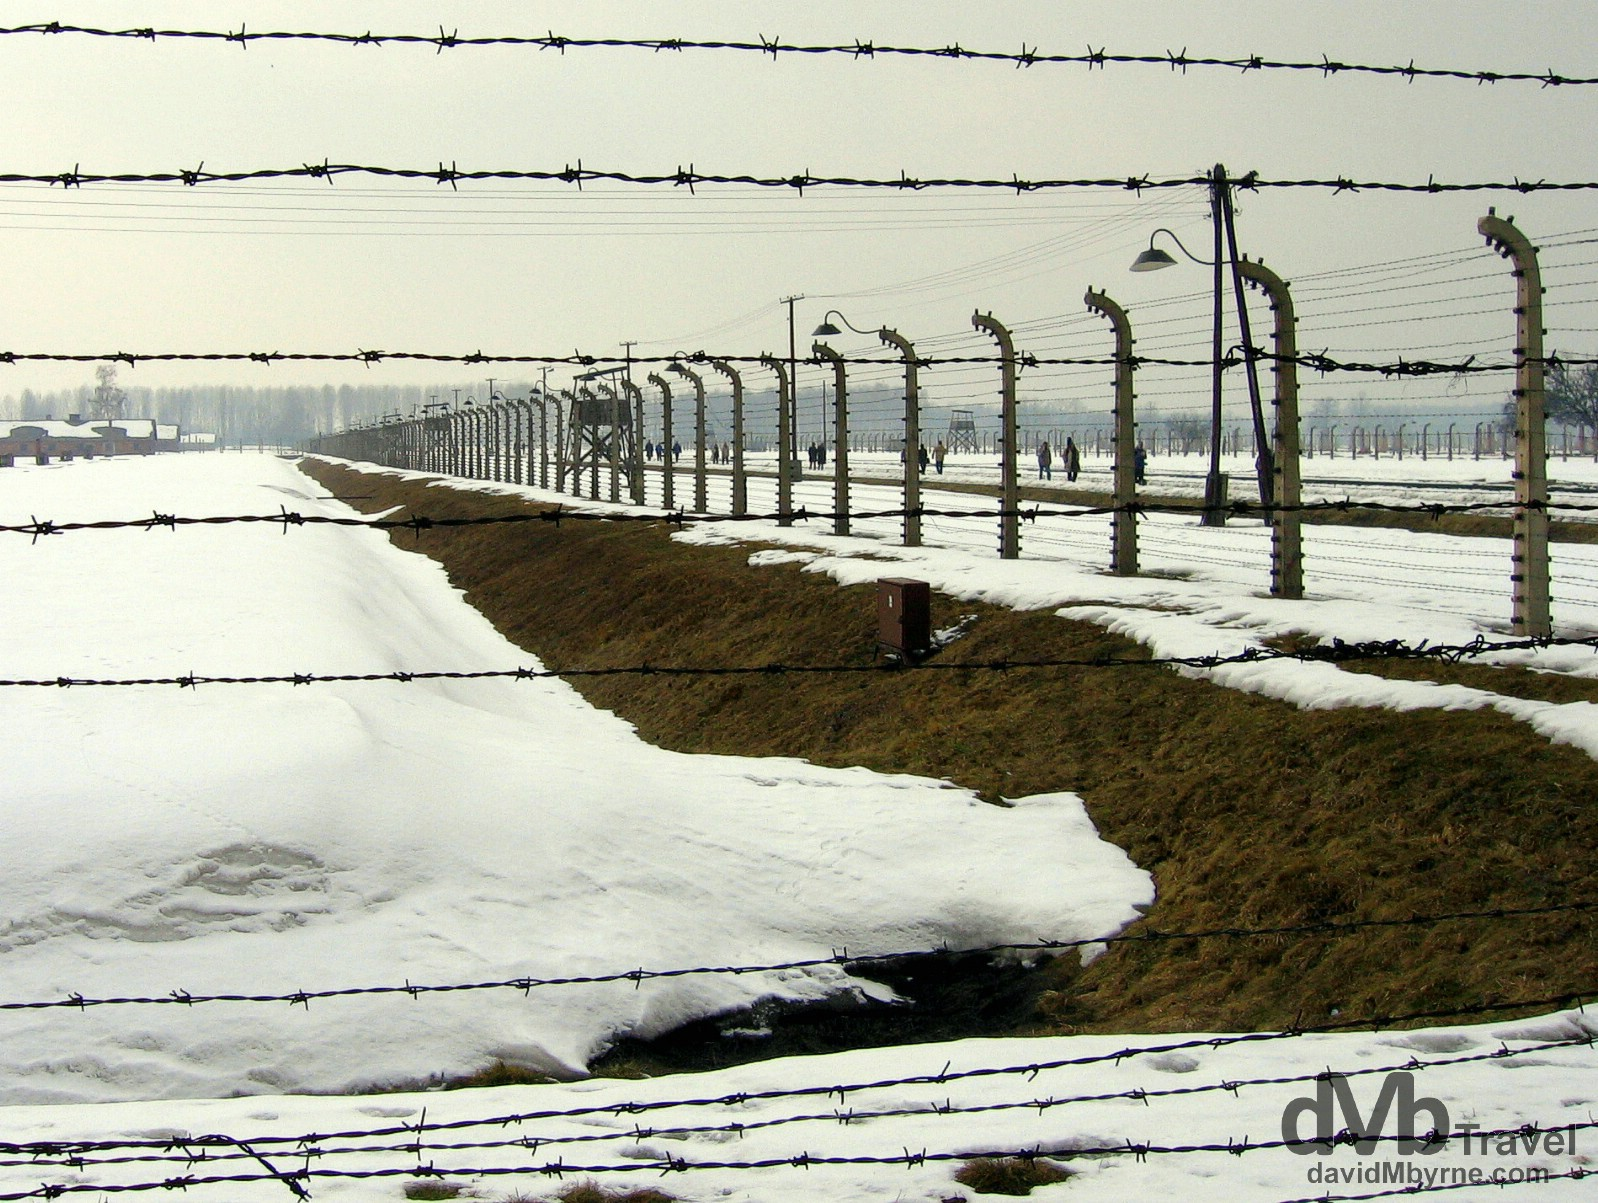 Birkenau Concentration Camp, Brzezinka, Poland. March 7th 2006